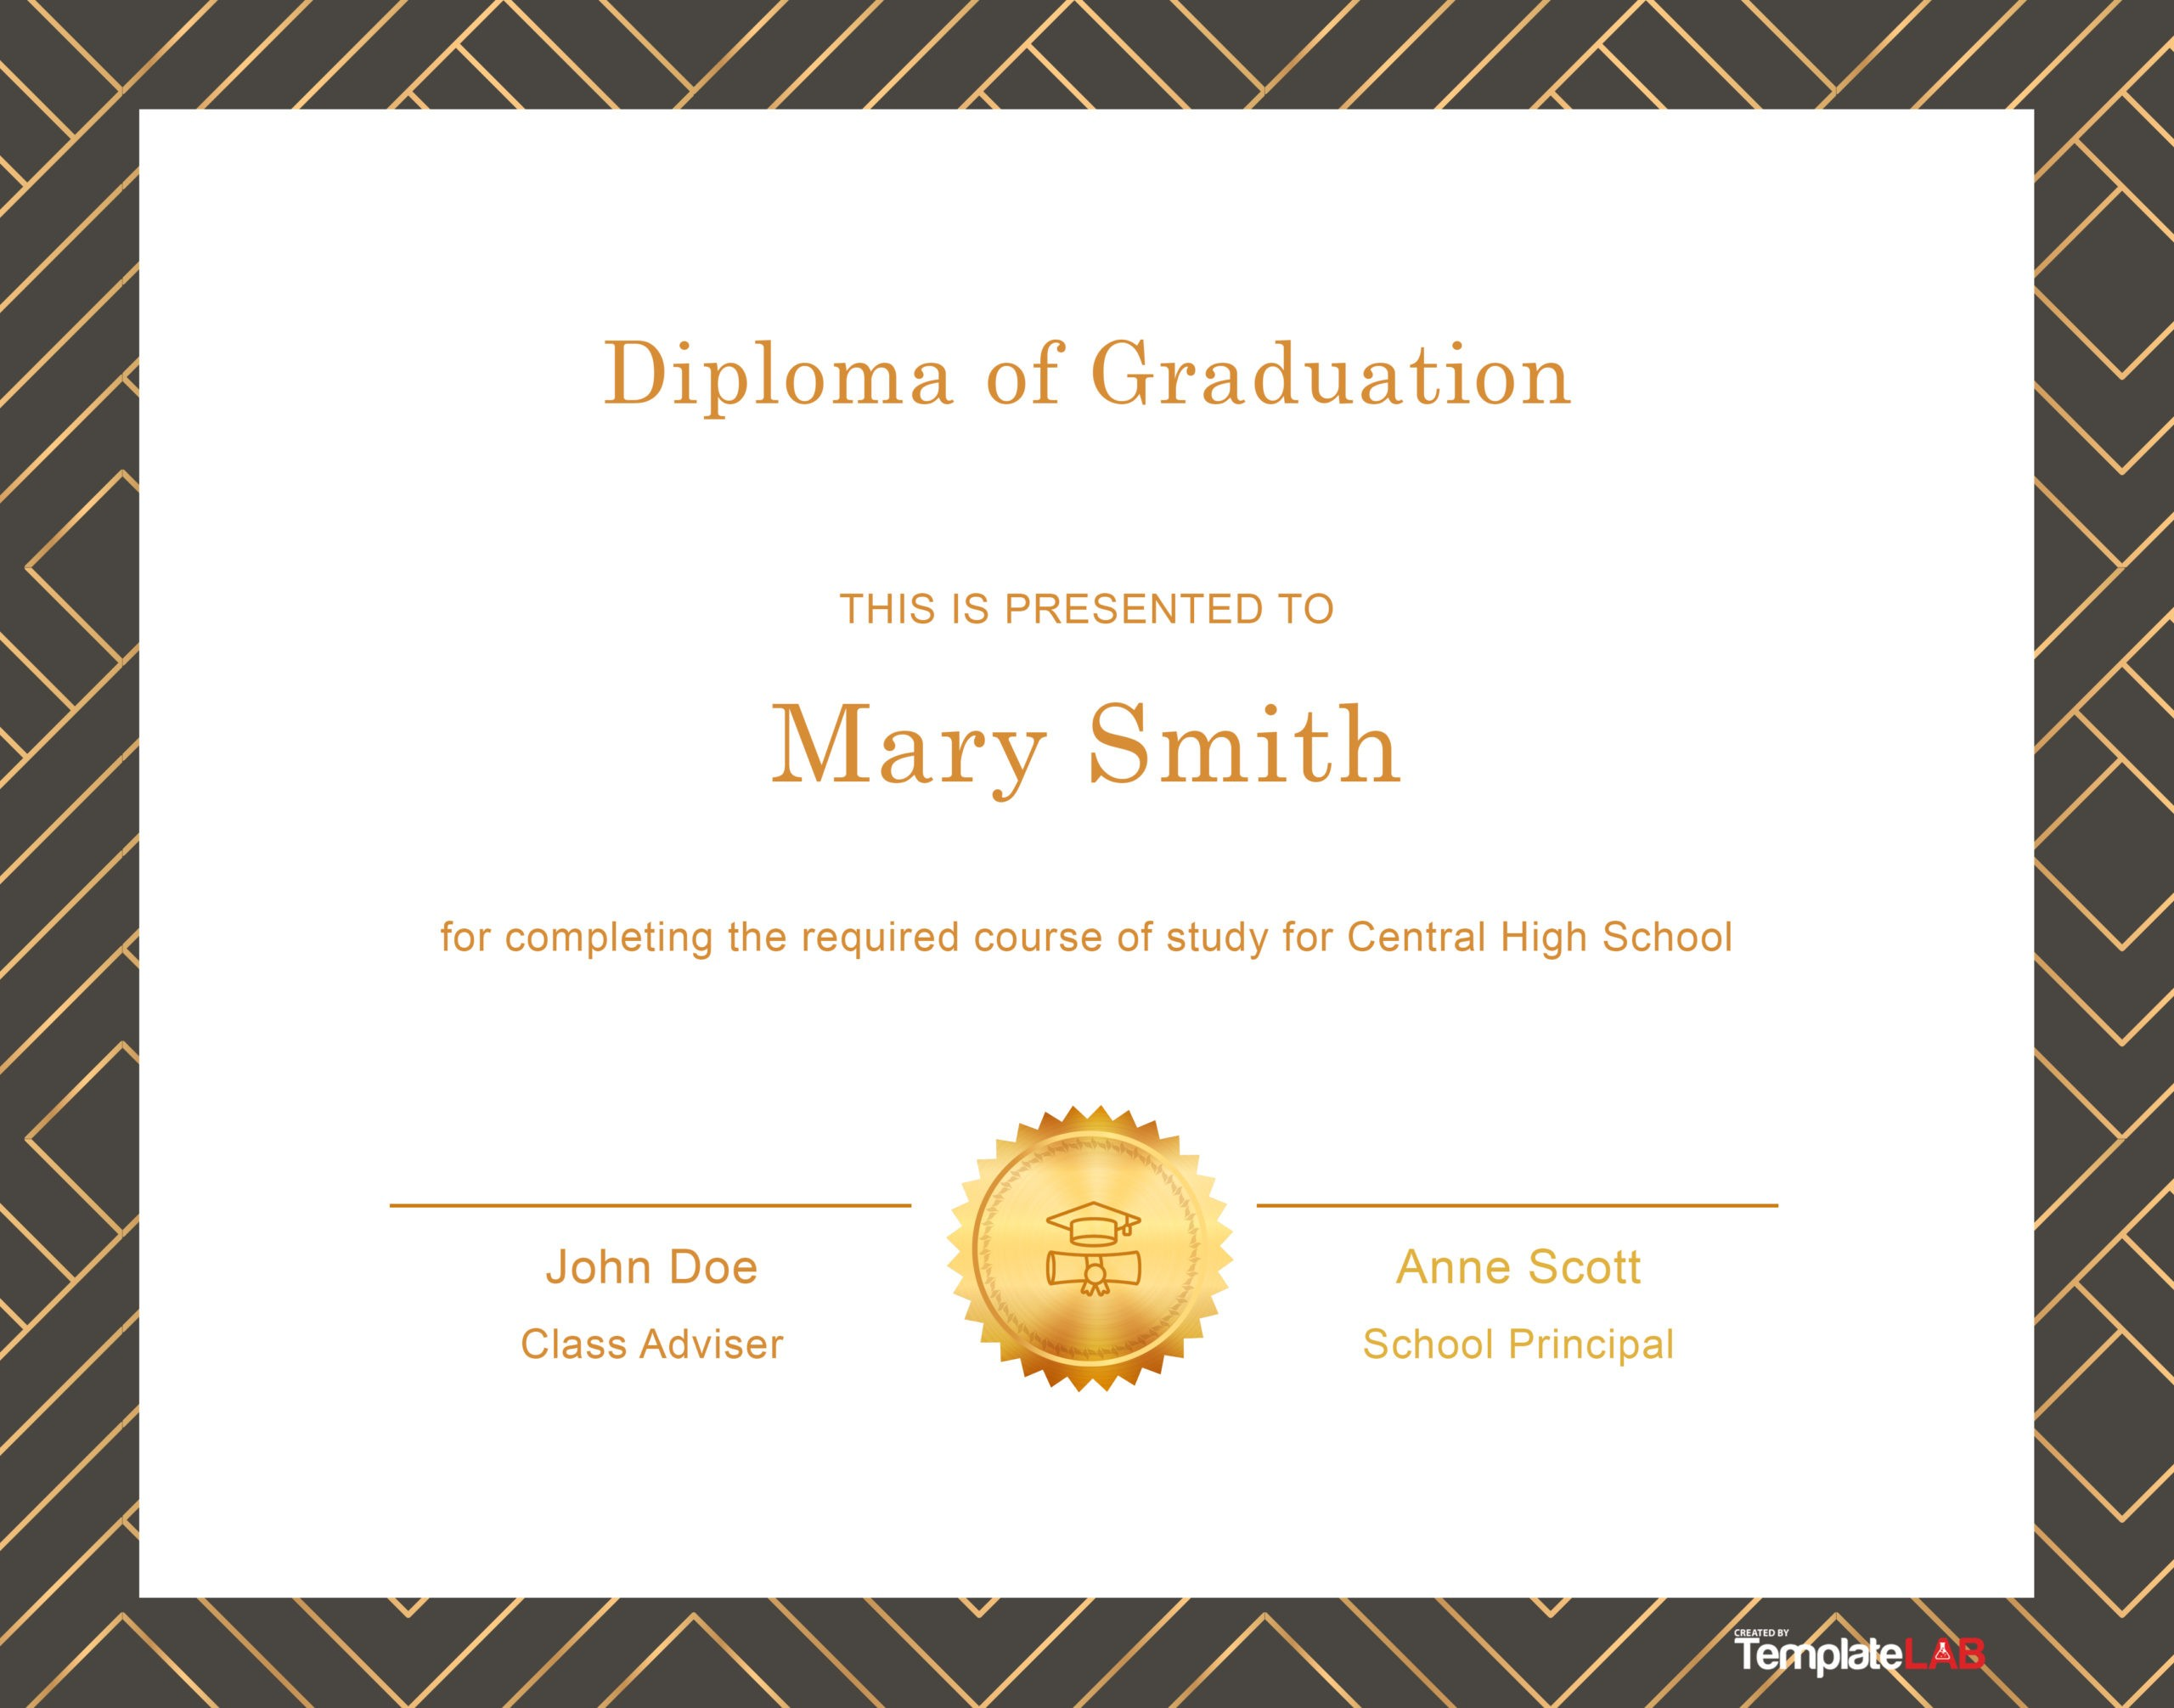 Free Diploma Template from templatelab.com